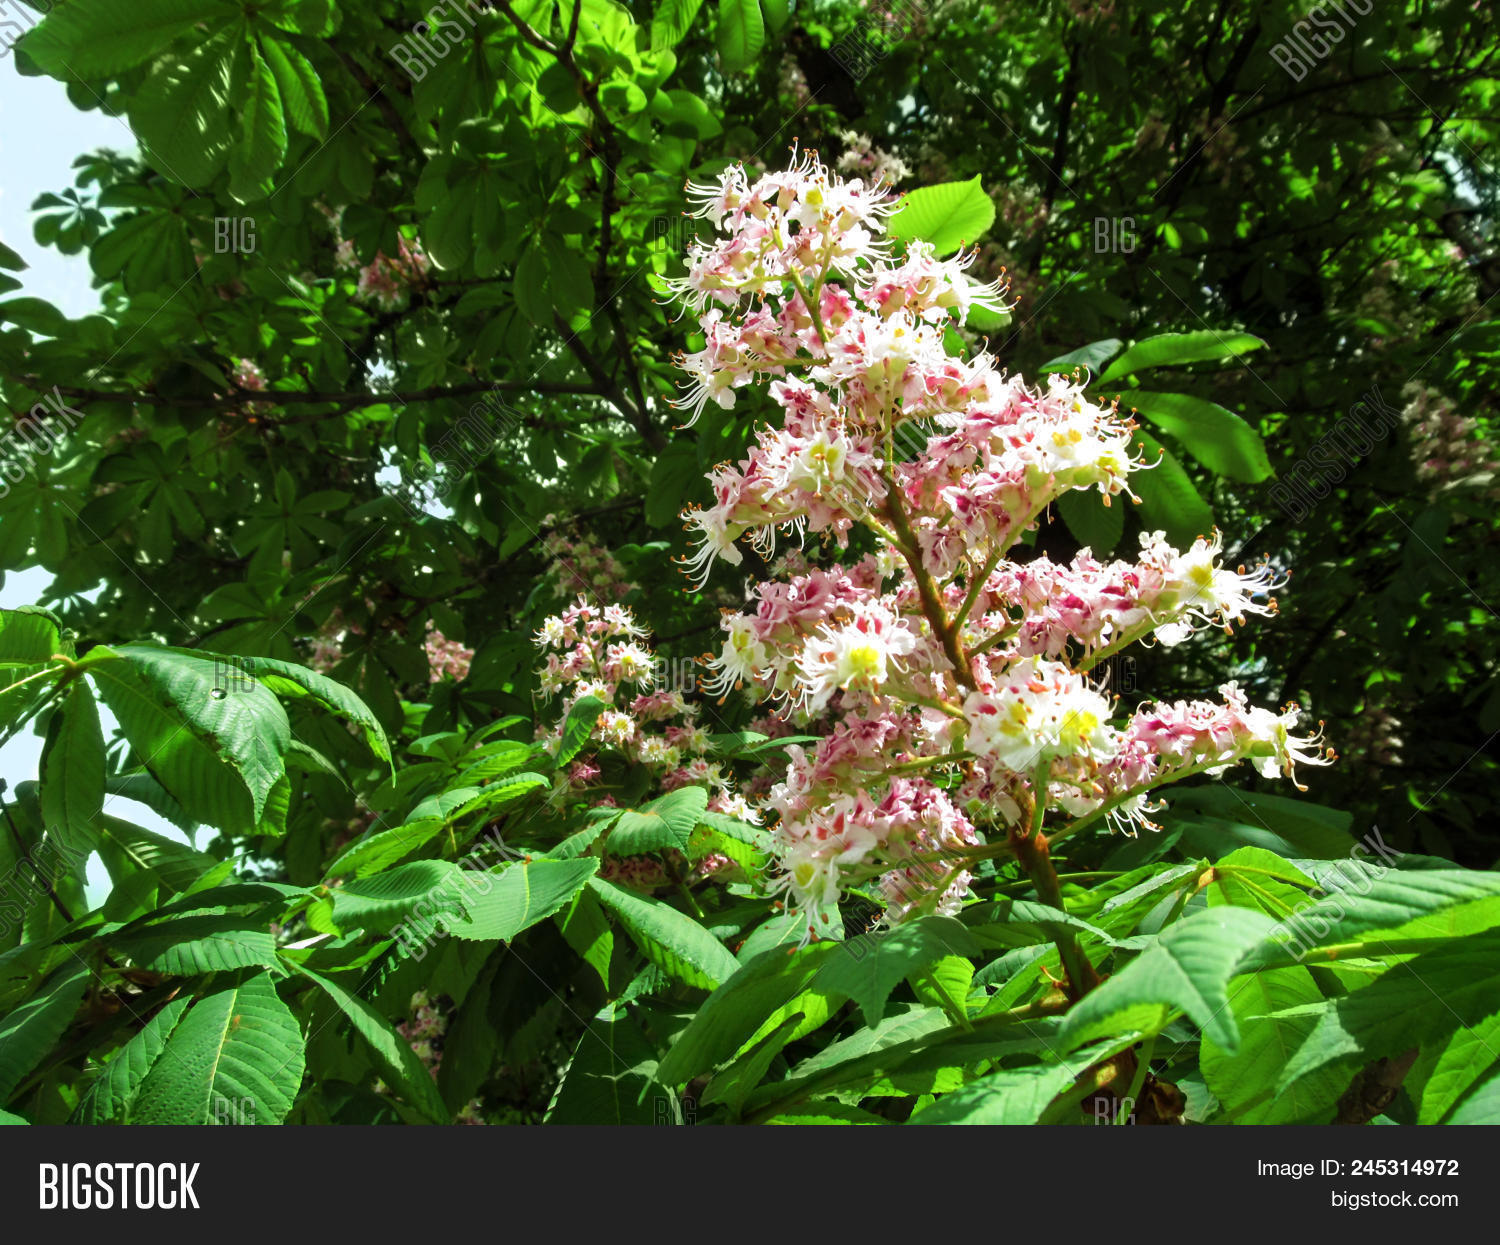 The Erect Panicle Of Horse Chestnut With Pink White Flowers On A